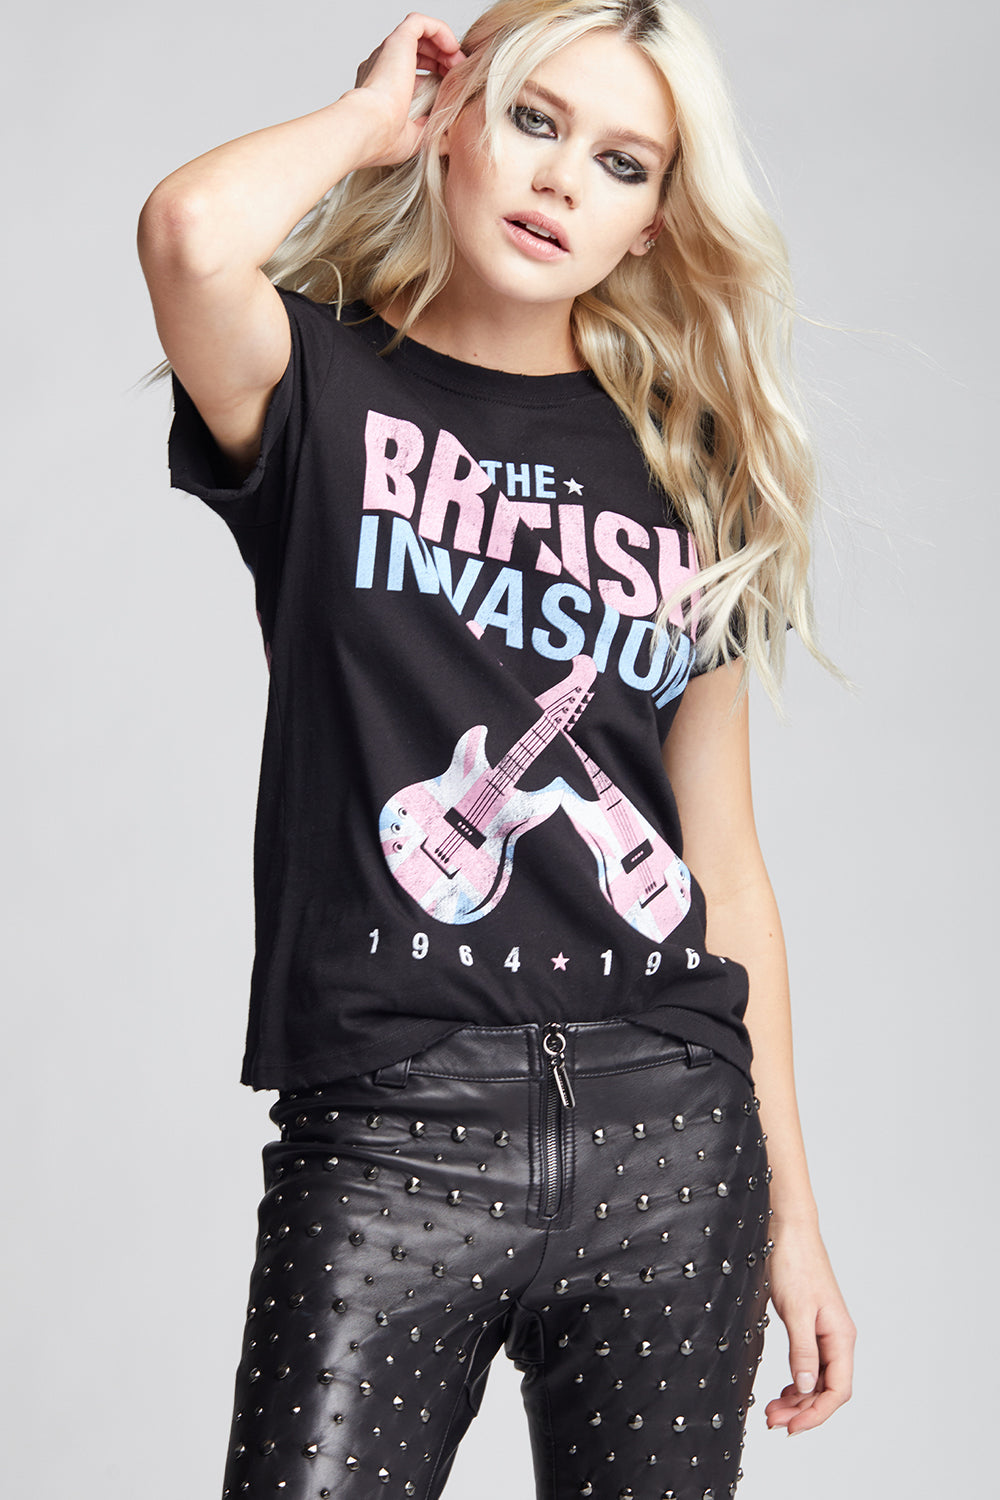 British Invasion Band Tee